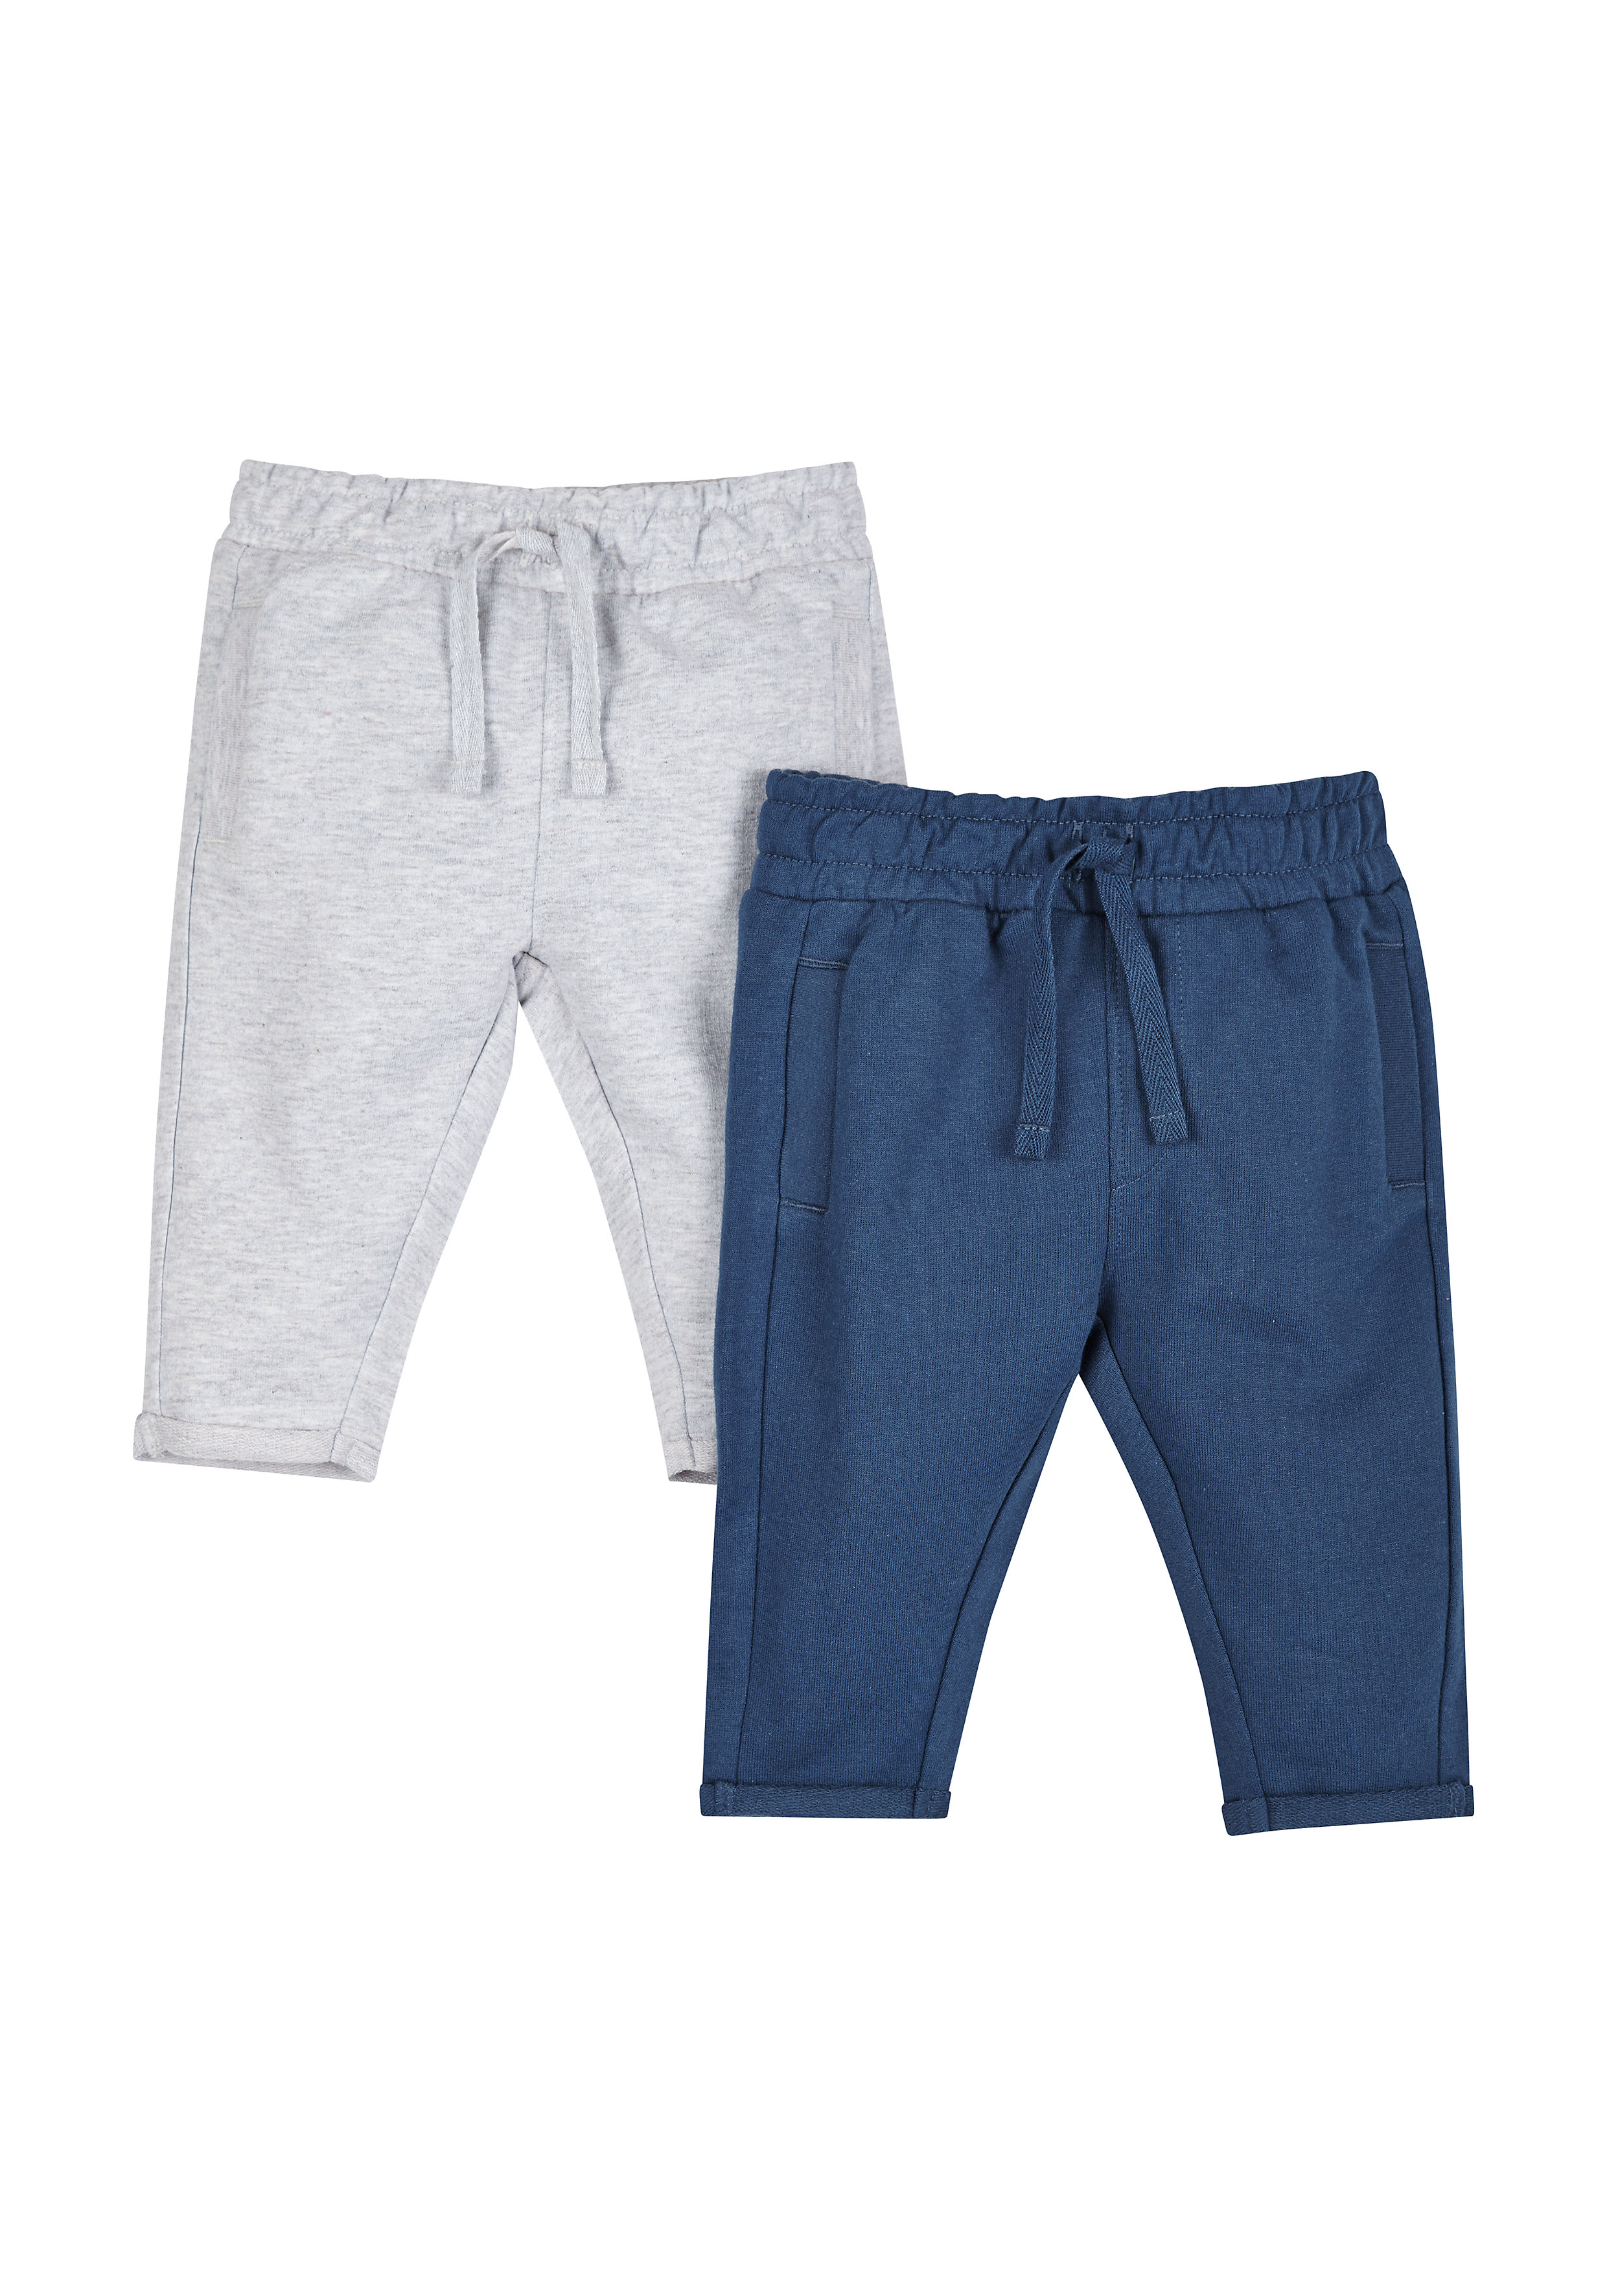 Mothercare | Boys Grey Marl And Navy Joggers - Pack Of 2